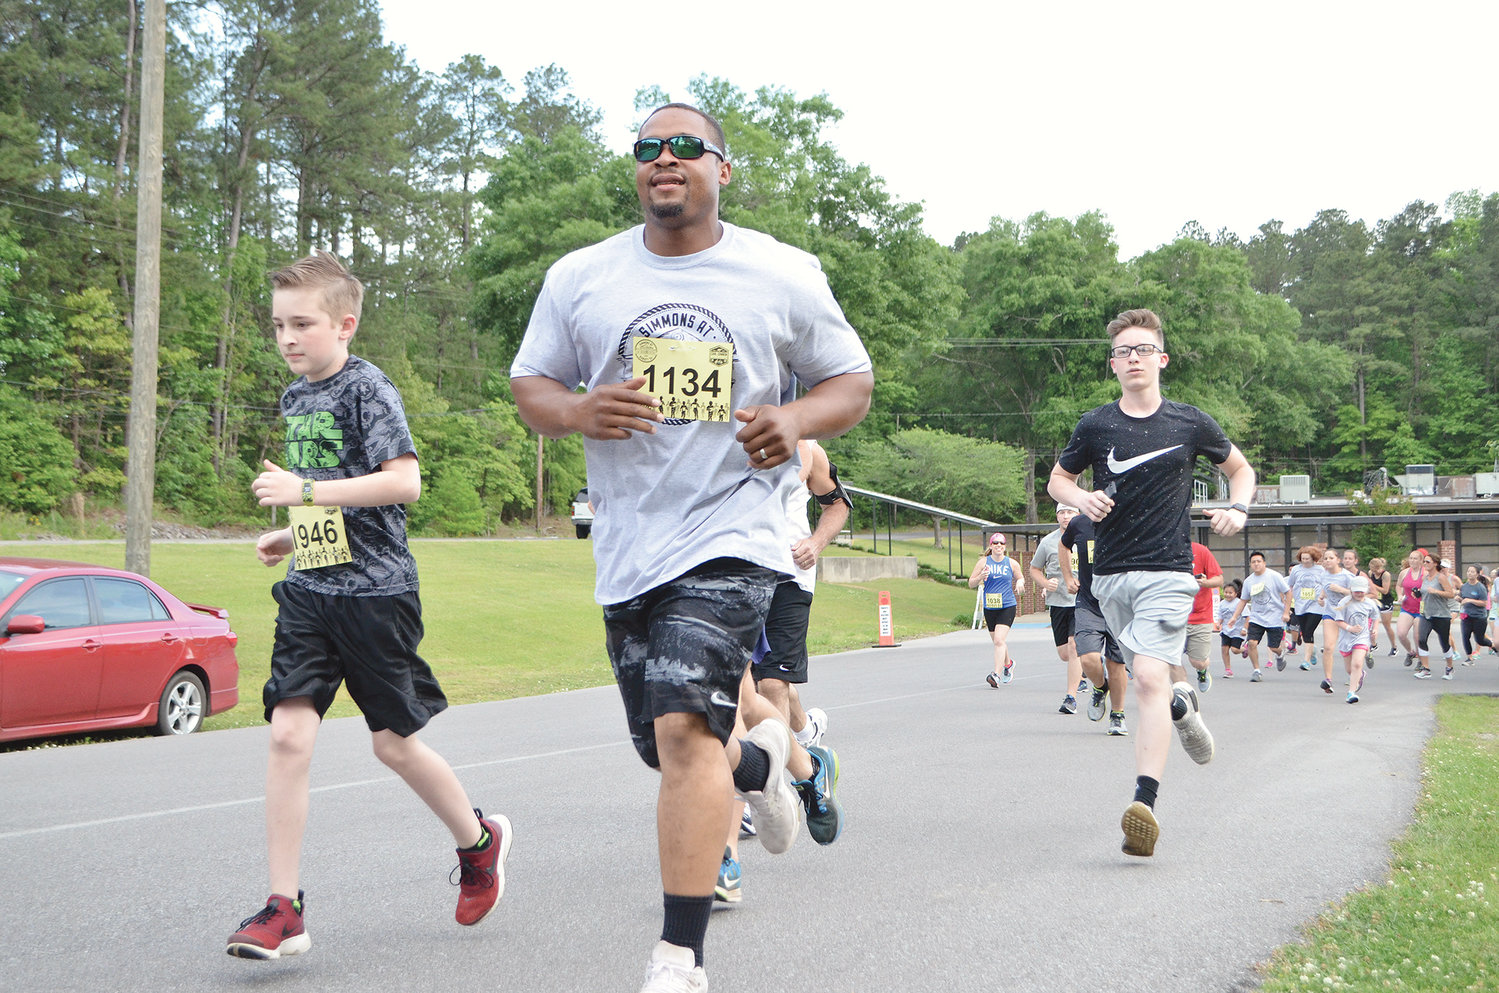 Hundreds will gather at T.R. Simmons Elementary School on Friday for the annual Simmons @ Sunset 5K and Fun Run.